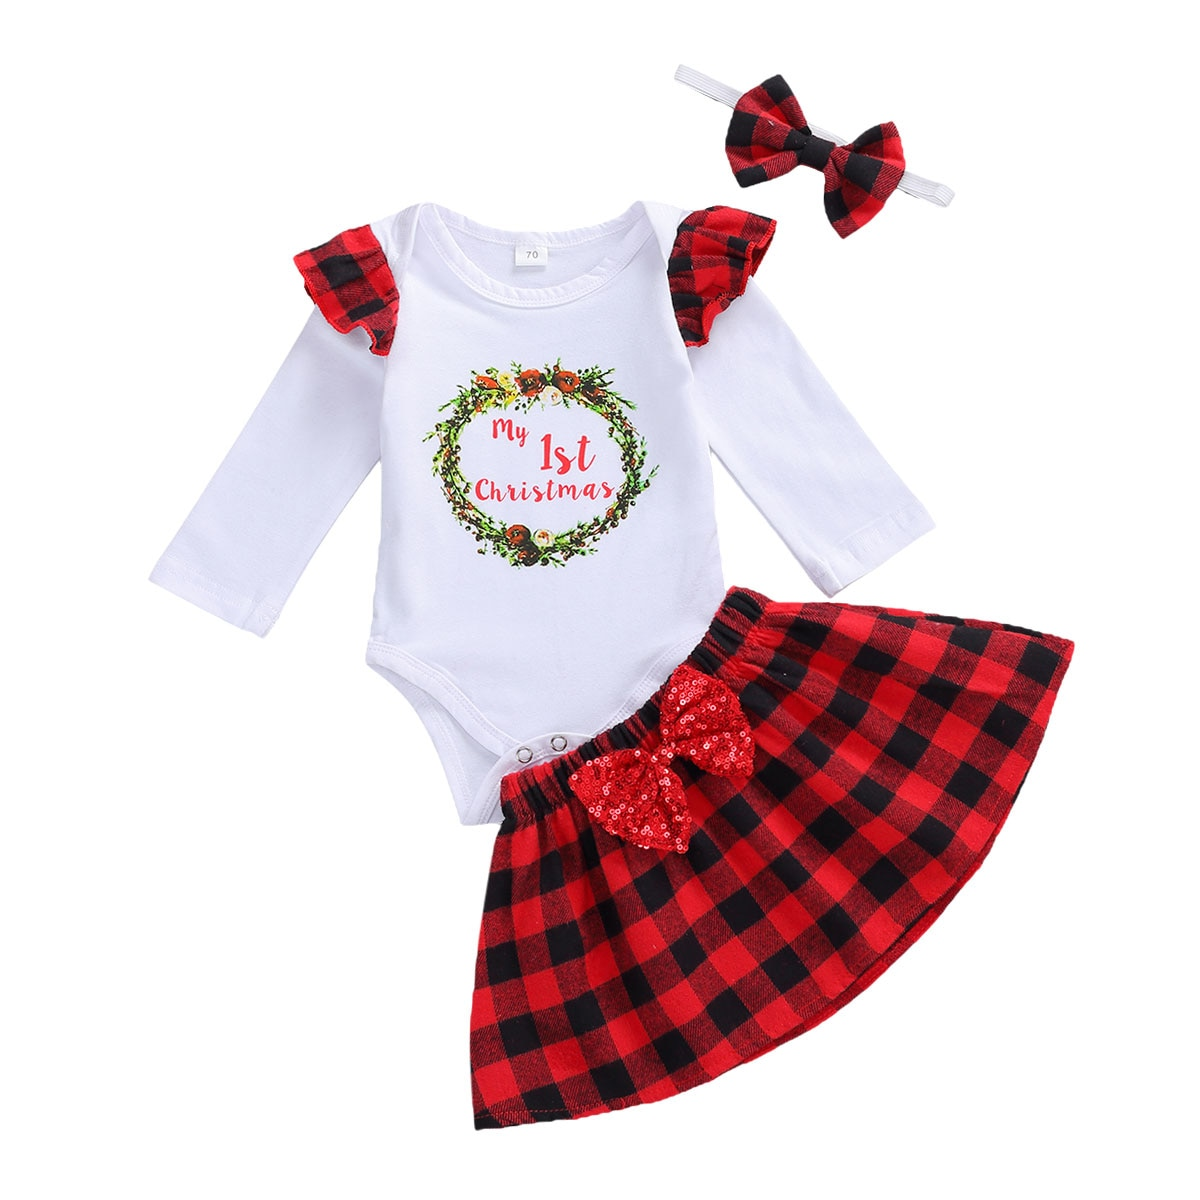 3Pcs Christmas Infant Clothes Suit Baby Girls Long Sleeve Round Collar Letter Romper Plaid Skirt Bow Headwear Baby Xmas Clothes